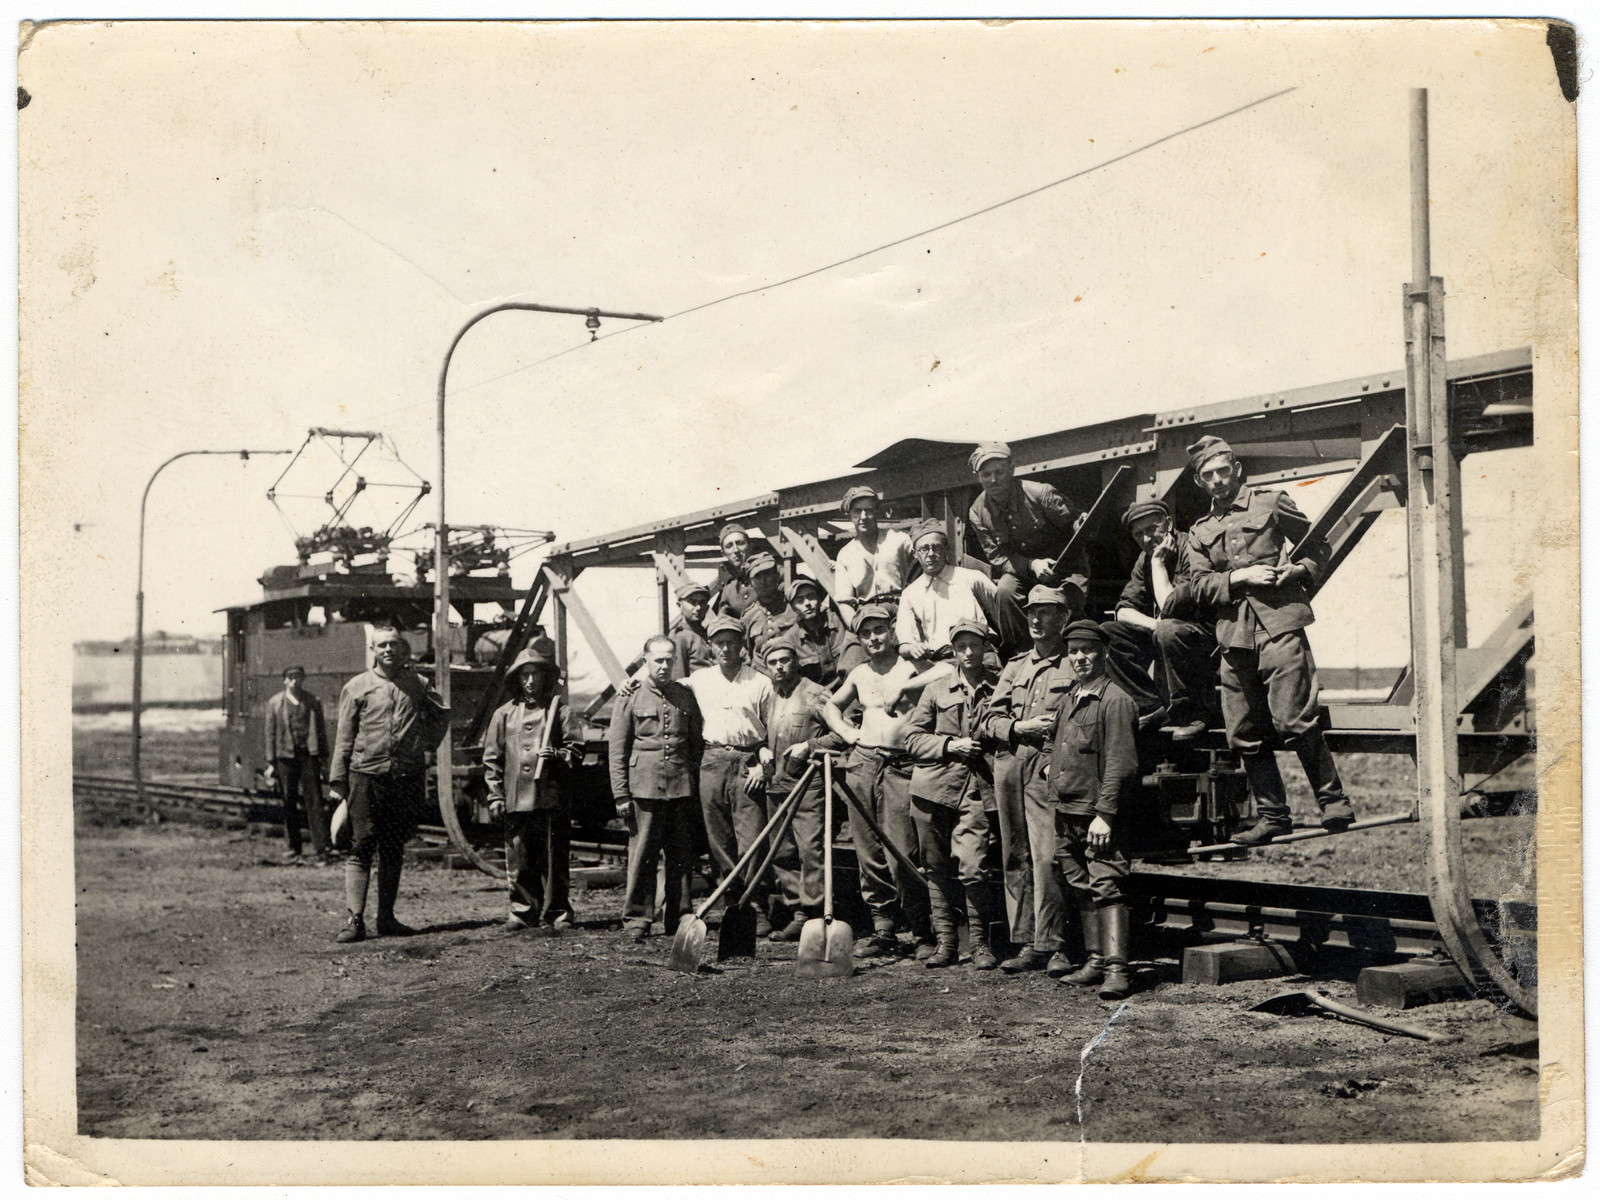 Prisoners in the Elsterhorst POW camp perform forced labor building or repairing train tracks.